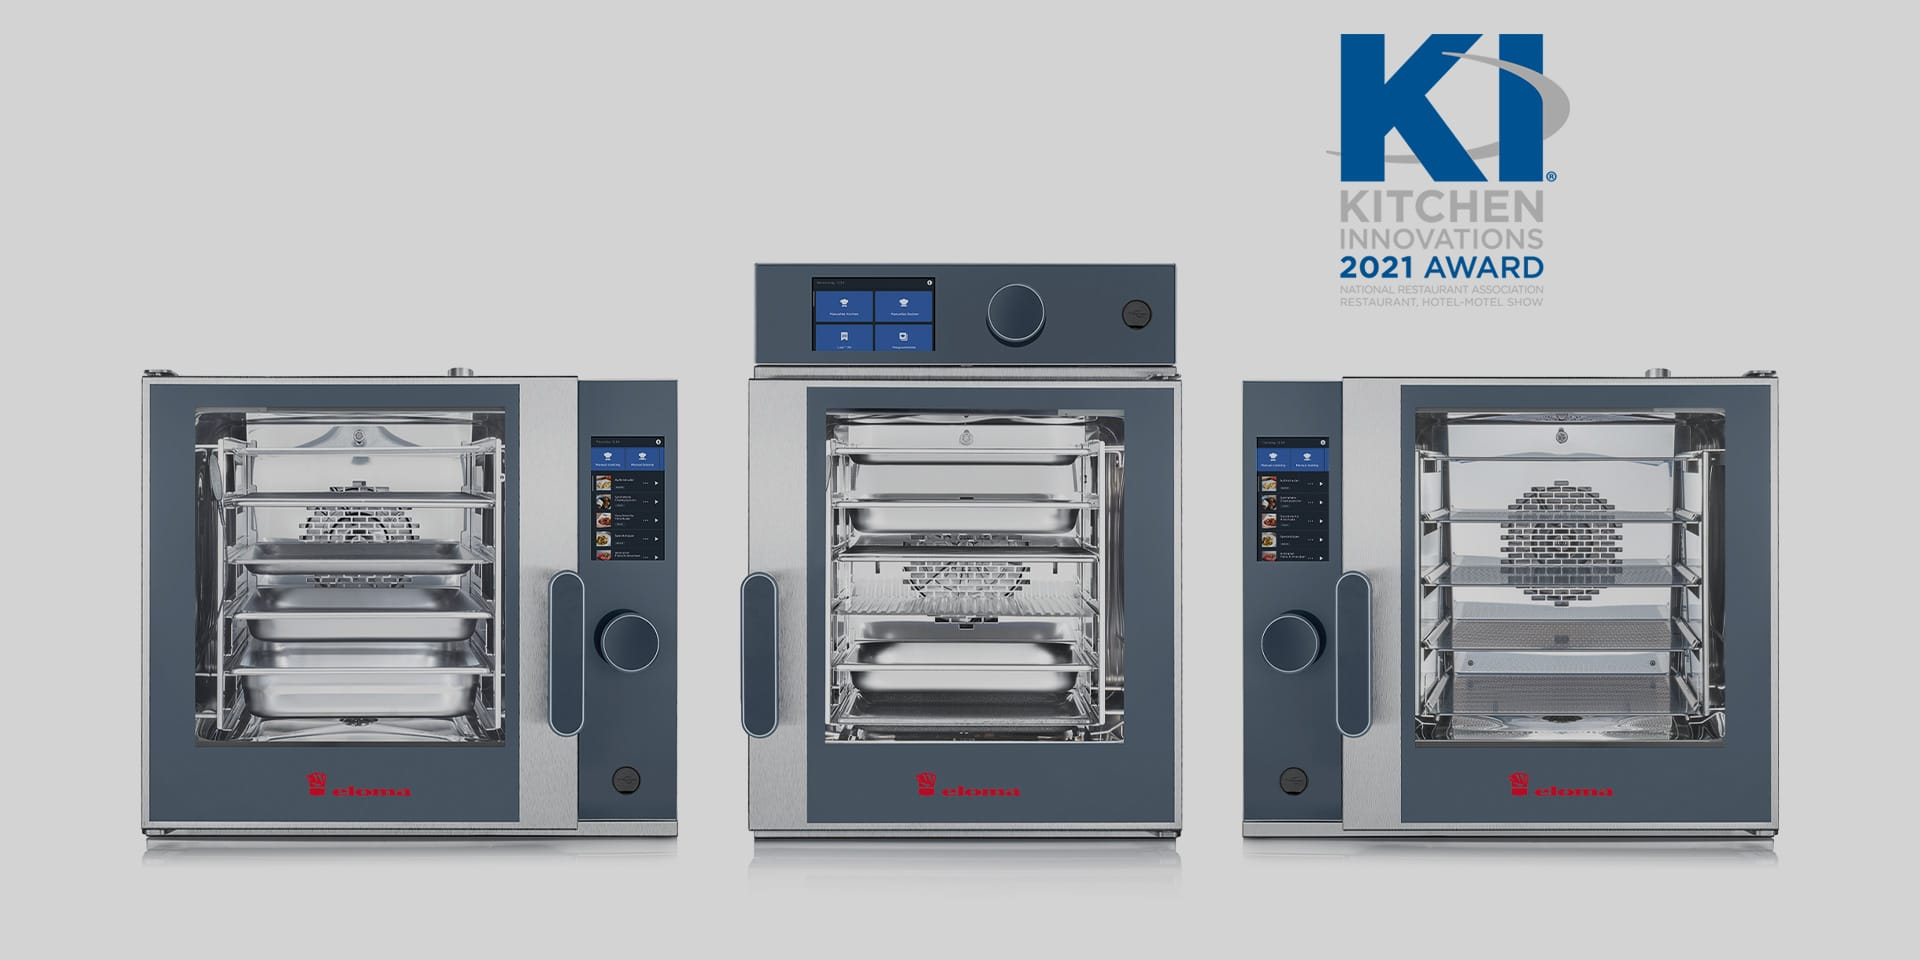 Kitchen Innovation Award USA for Compact Pro Eloma